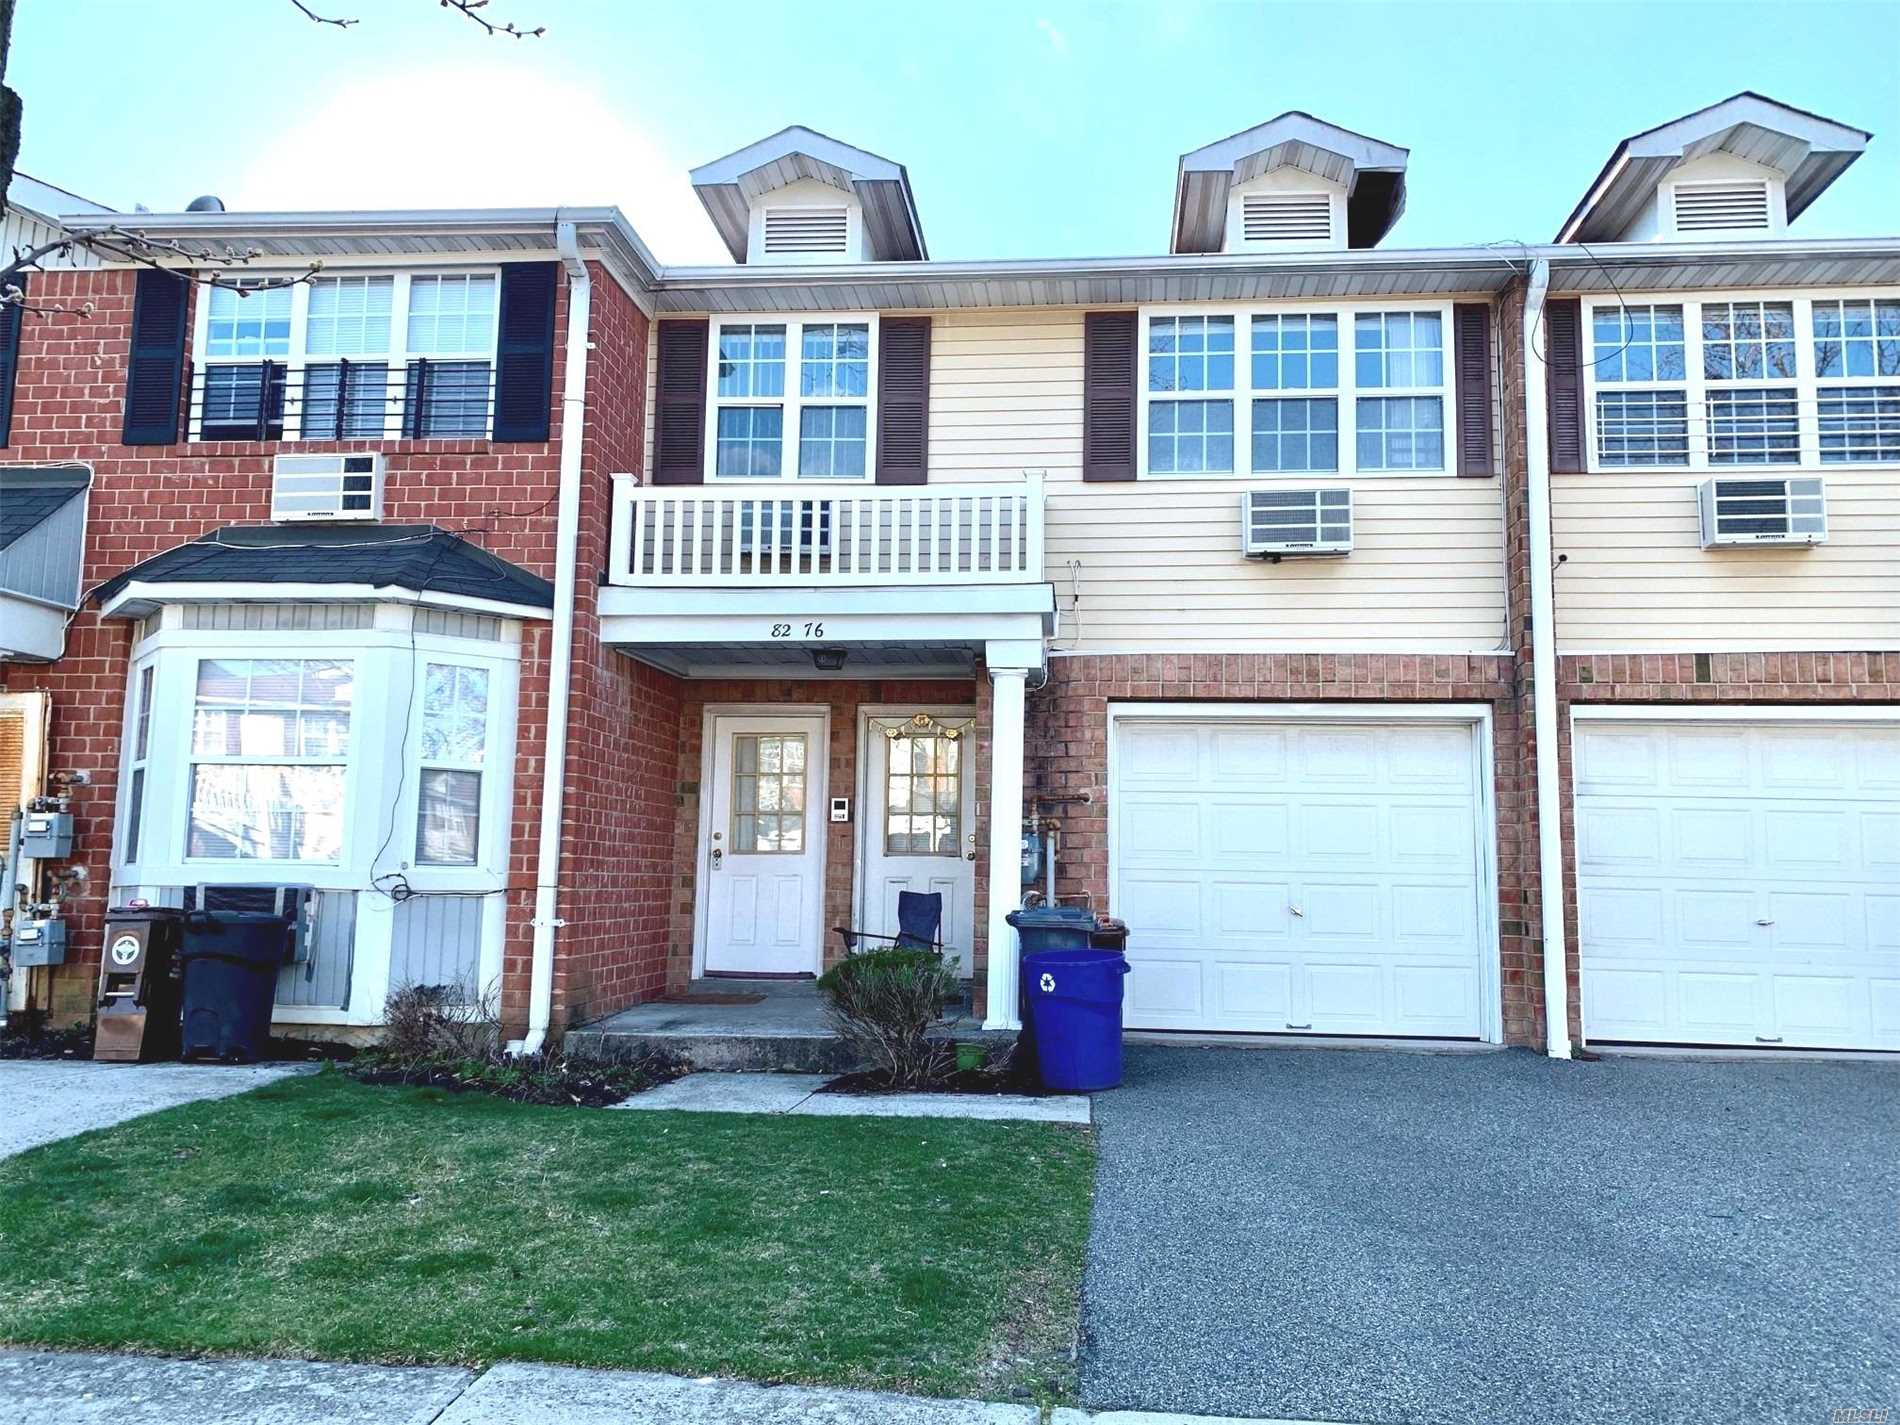 Gated Community With 24 Hr Security. Bright And Clean 3 Bedroom With Finished Basement. Washer And Dryer Included. Hardwood Floors Updated Kitchen And Bath. Huge Walk In Closets. Bright Basement That Has Door To The Back Yard. Conveniently Located. Easy Access To Highways And City Transportation